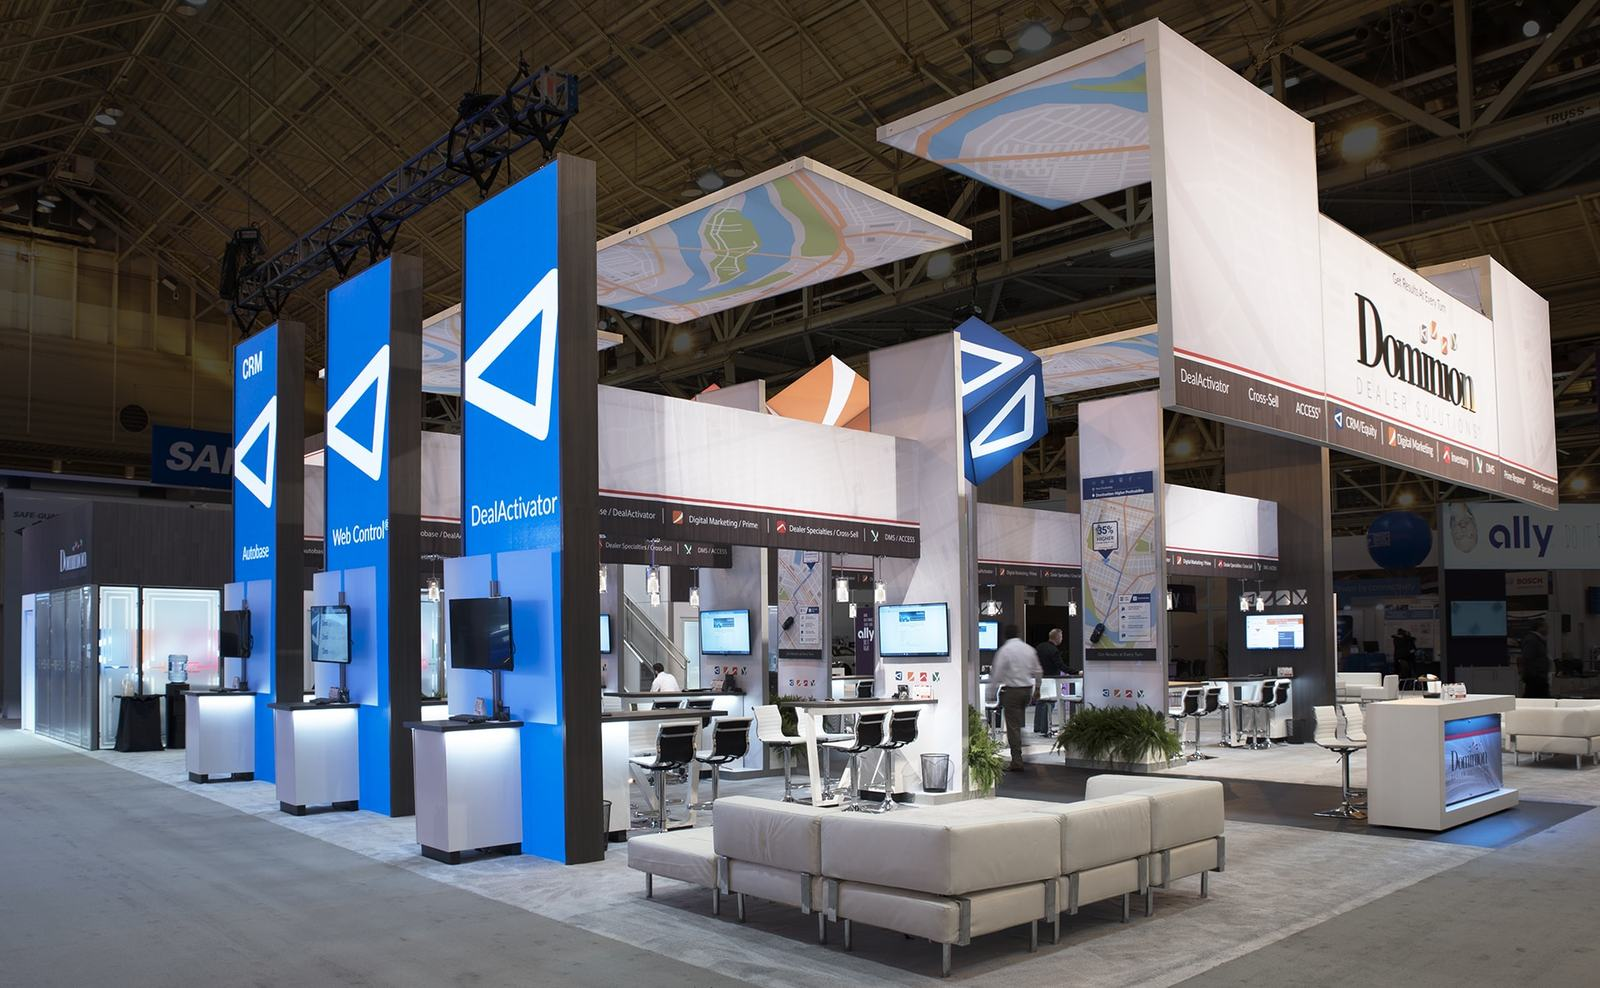 Exhibition Stand Design Tool : Exhibit design ideas inspiration trade show displays